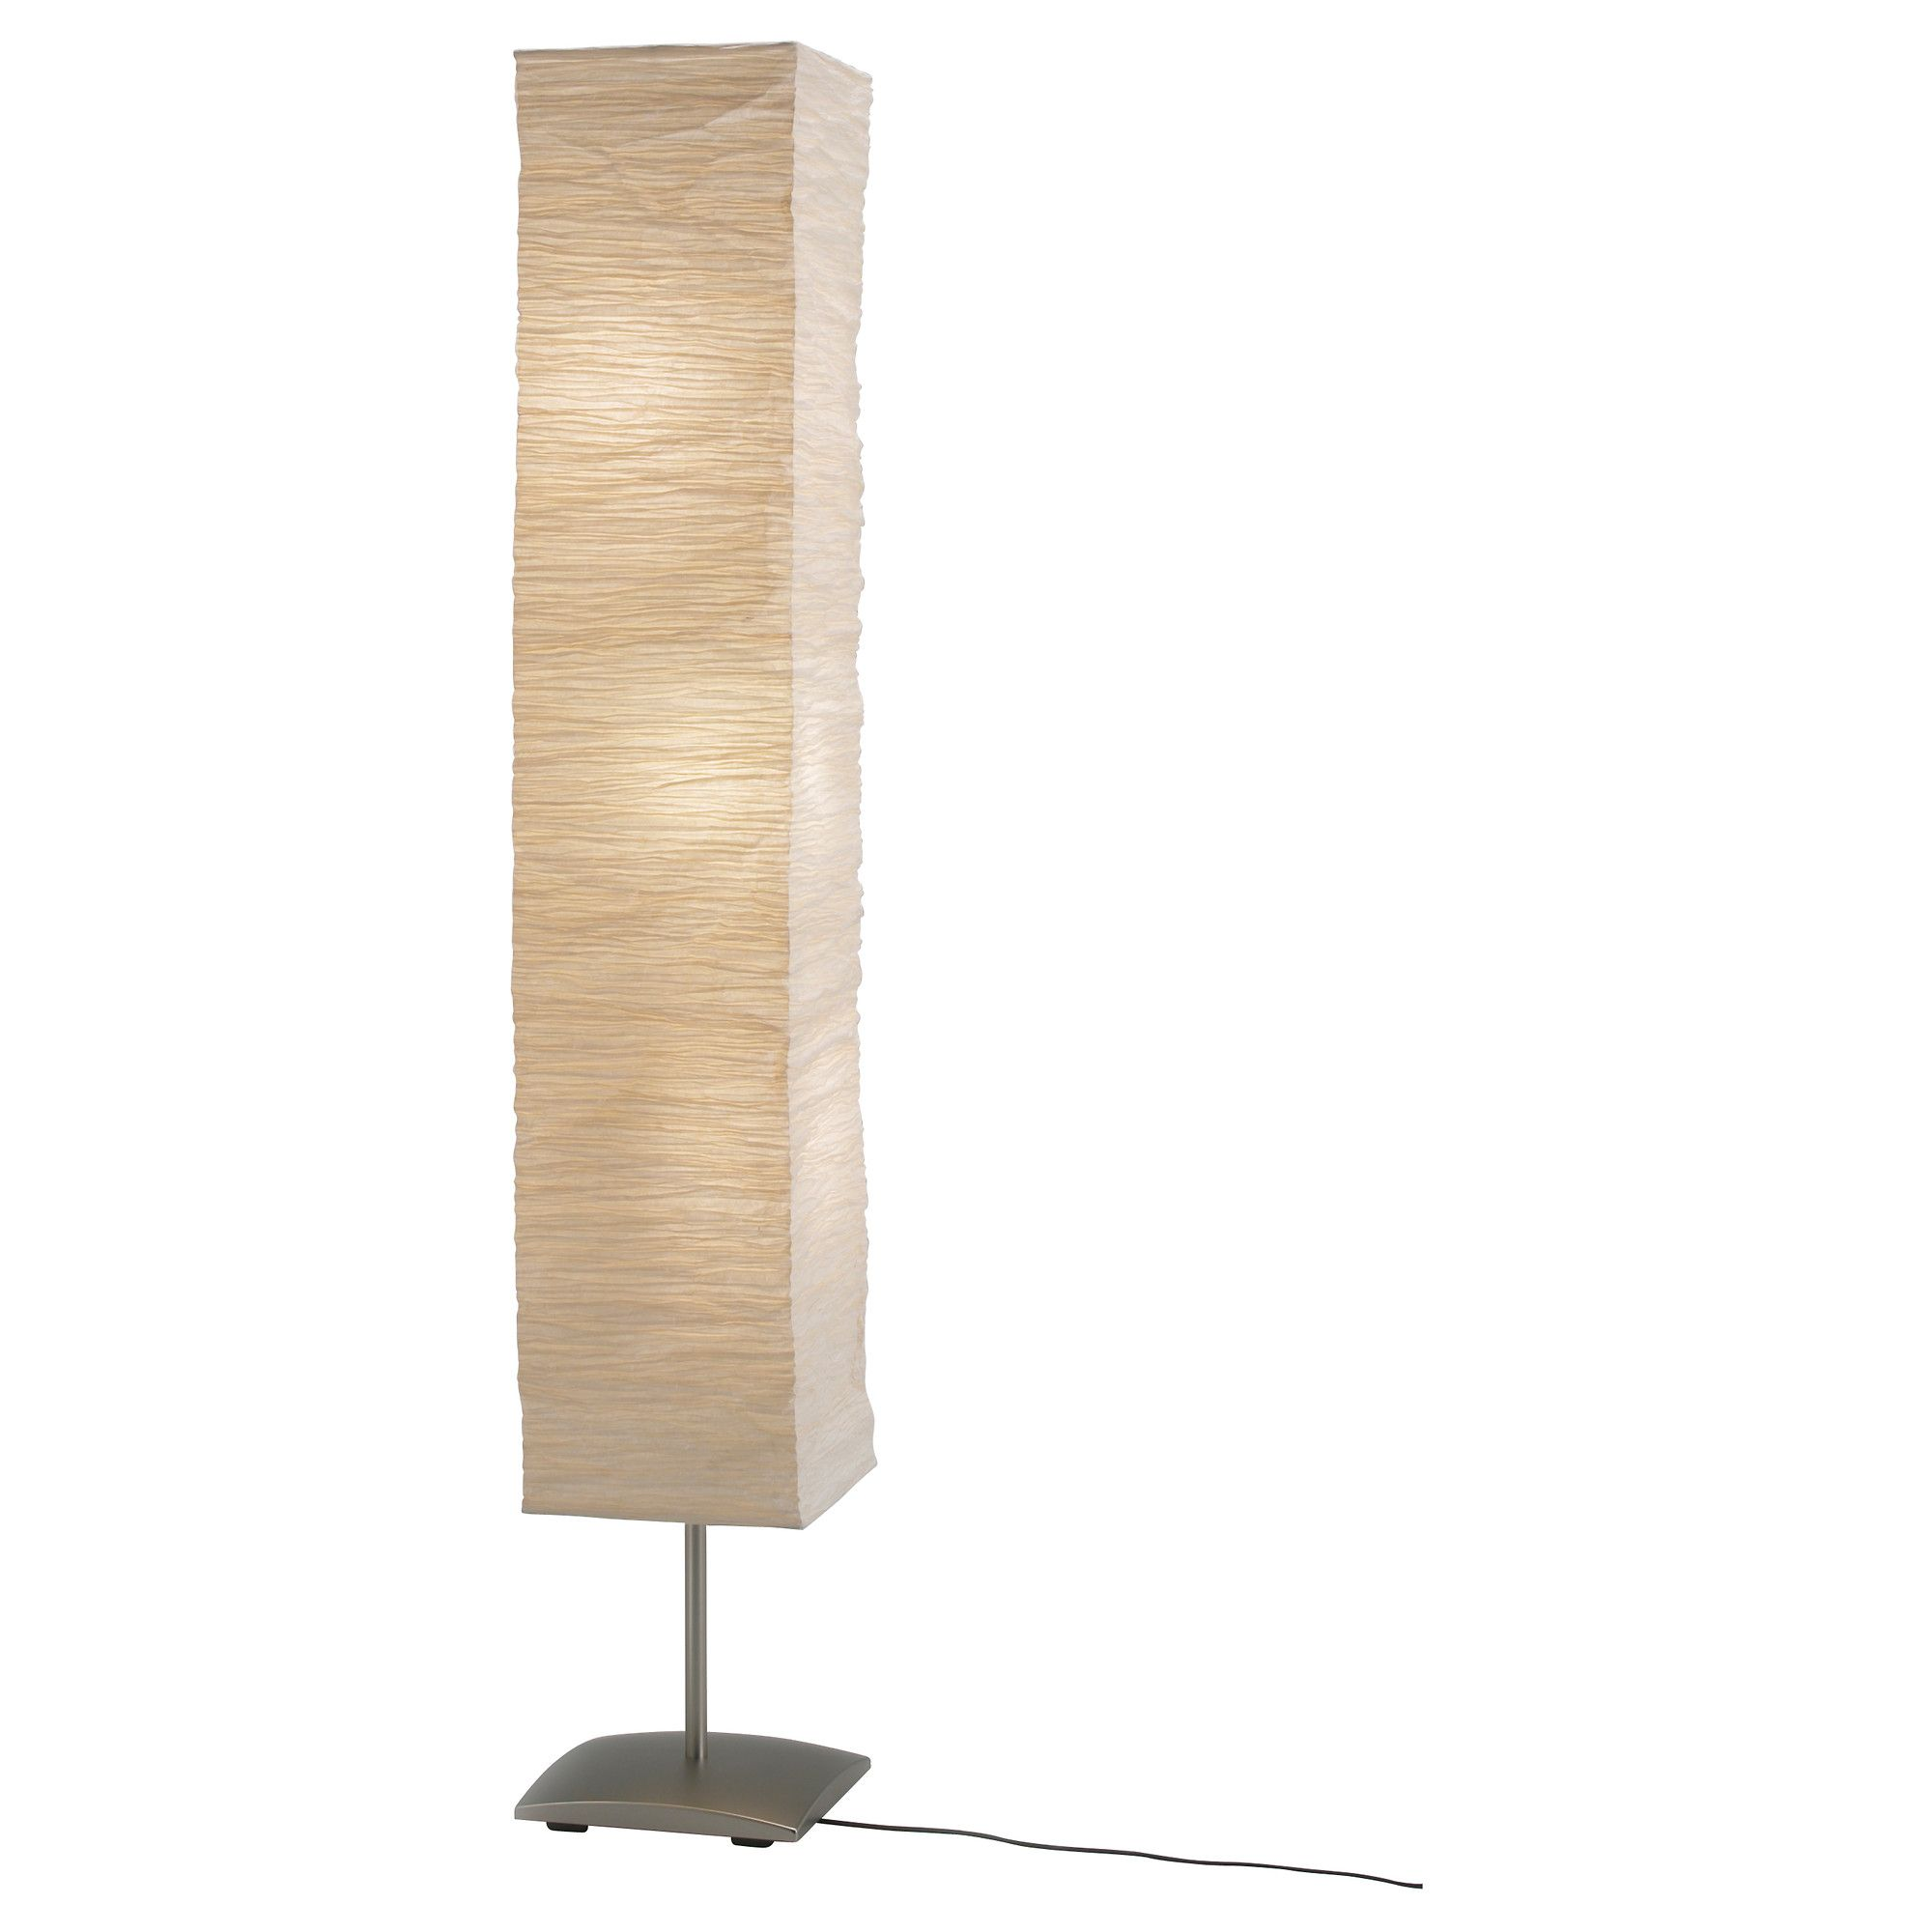 Paper Shade Floor Lamp Prepossessing Orgel Vreten Floor Lamp Natural Steel $1999 Article Number Design Inspiration